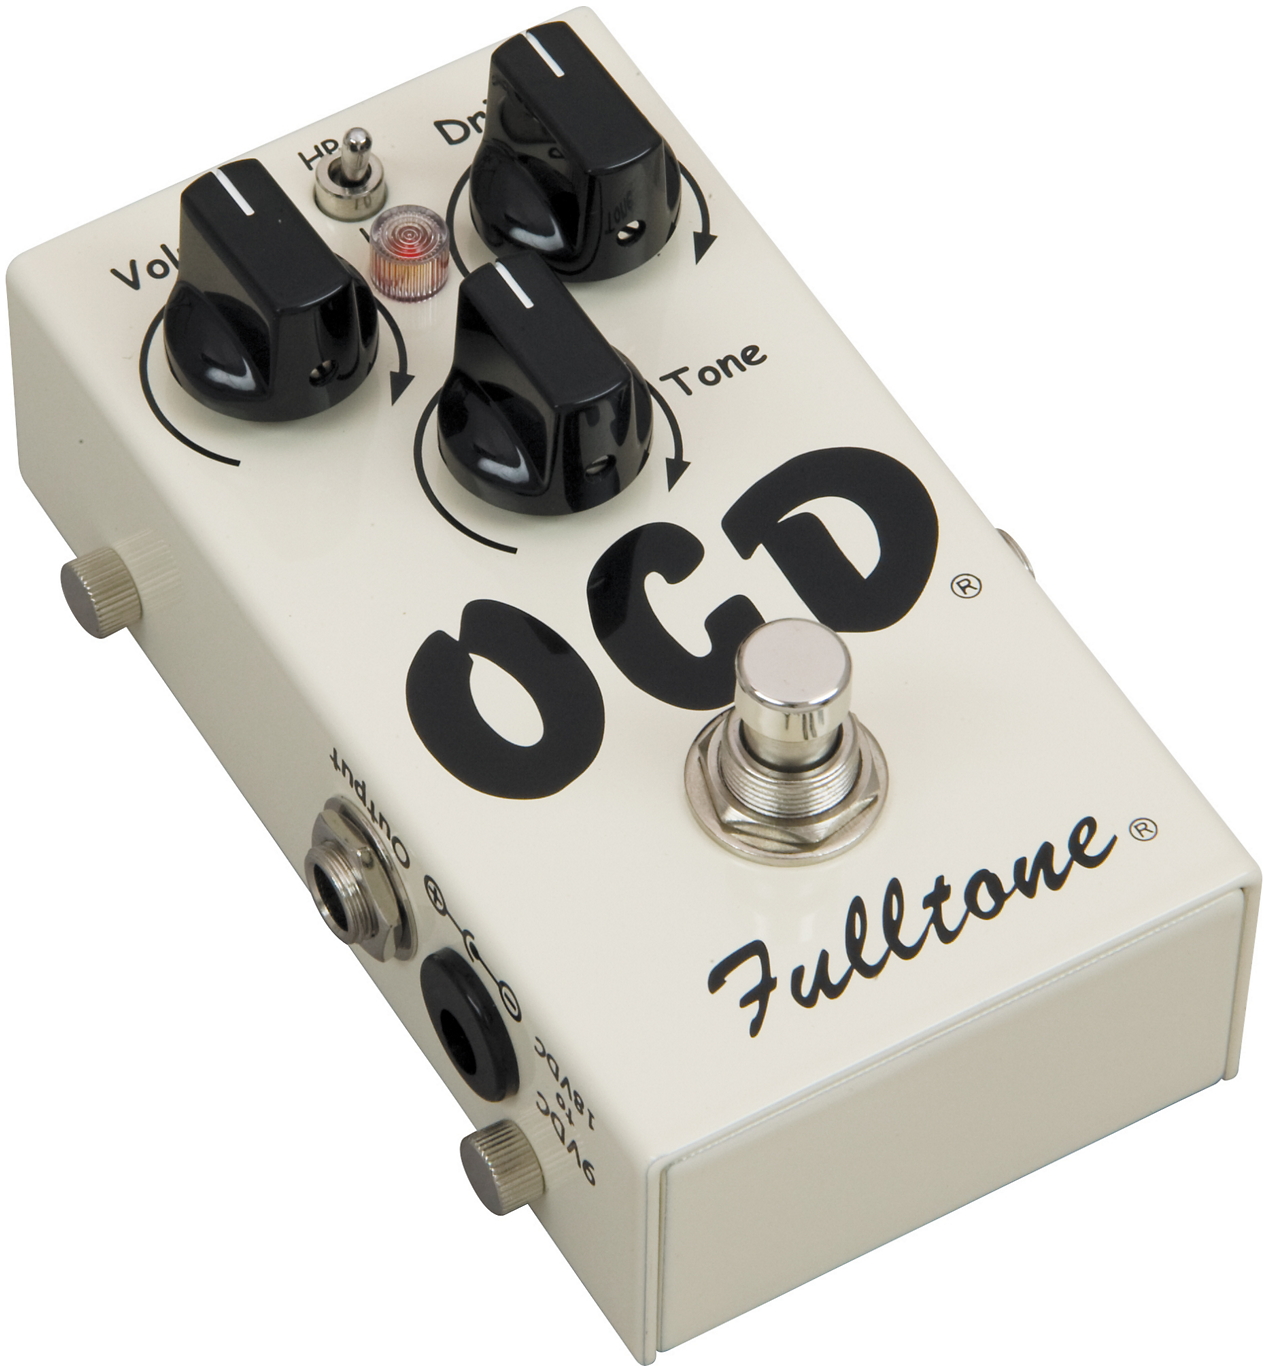 Fig 2: Two examples of guitar pedals similar to those designed in this project.